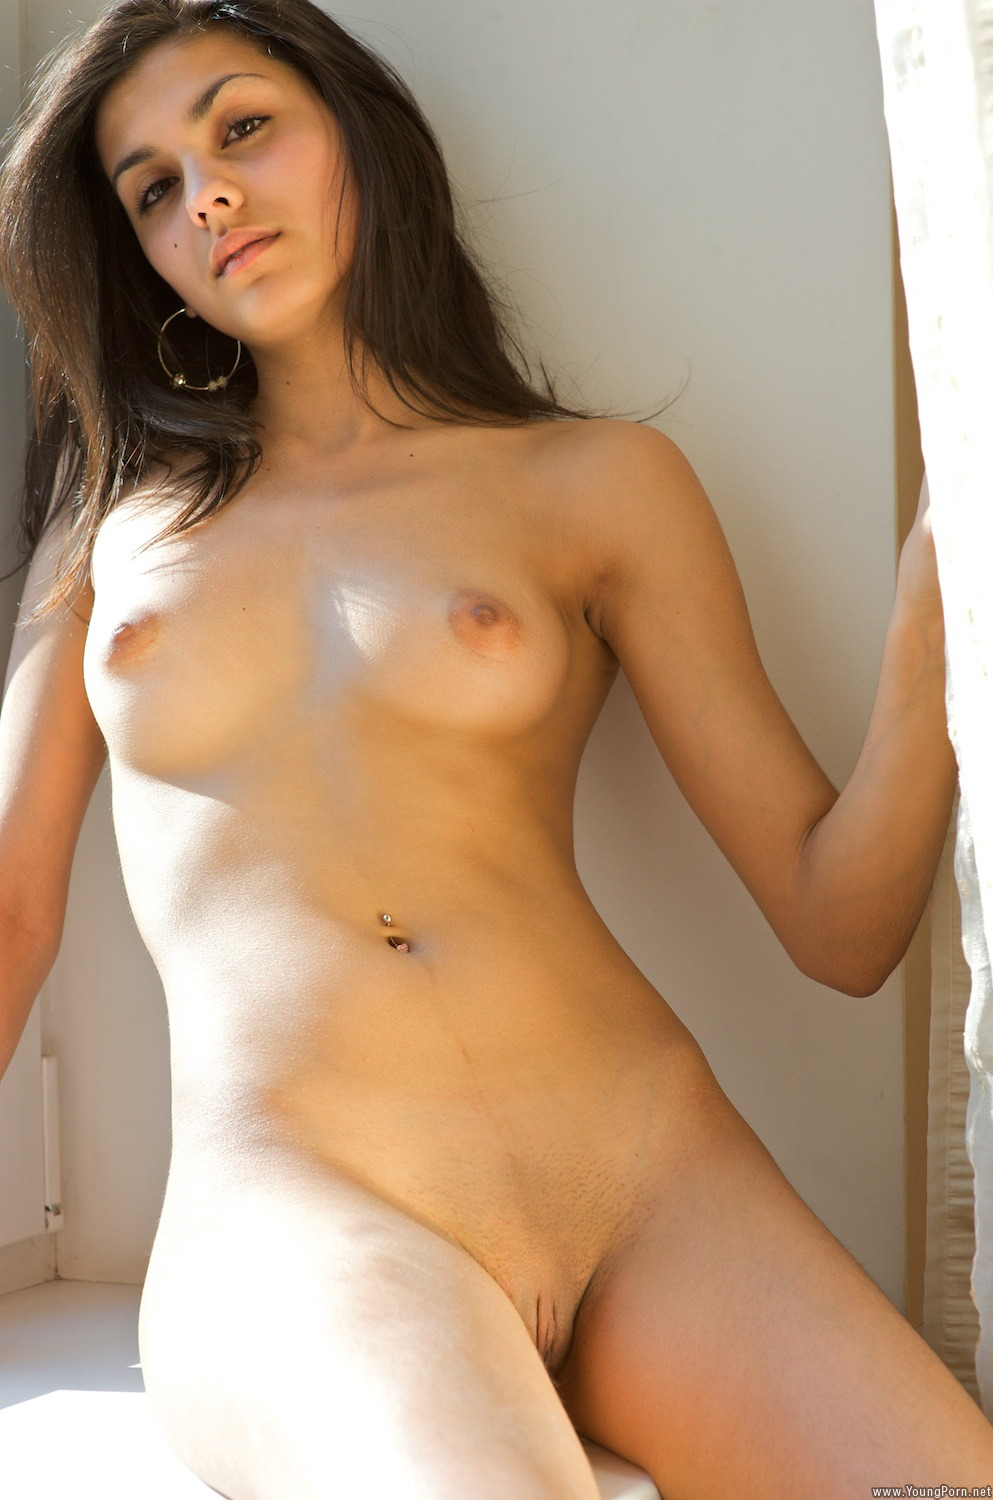 Indian hot nude girl pic